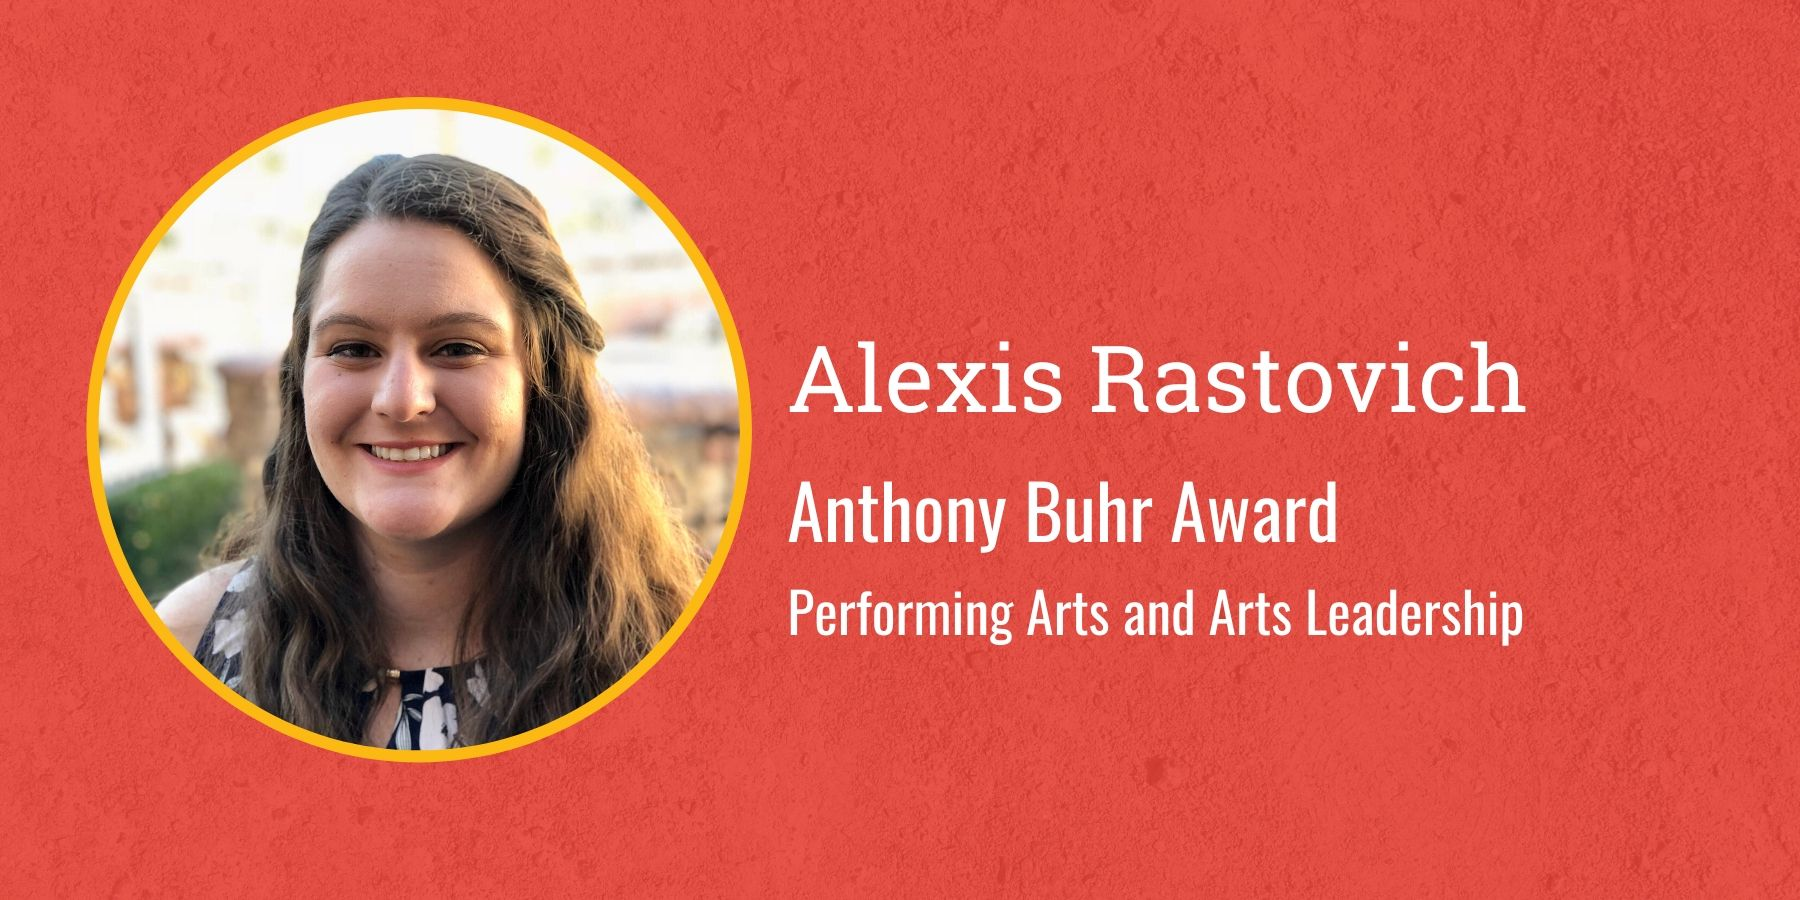 Photo of Alexis Rastovich, Anthony Buhr Award, Performing Arts and Arts Leadership